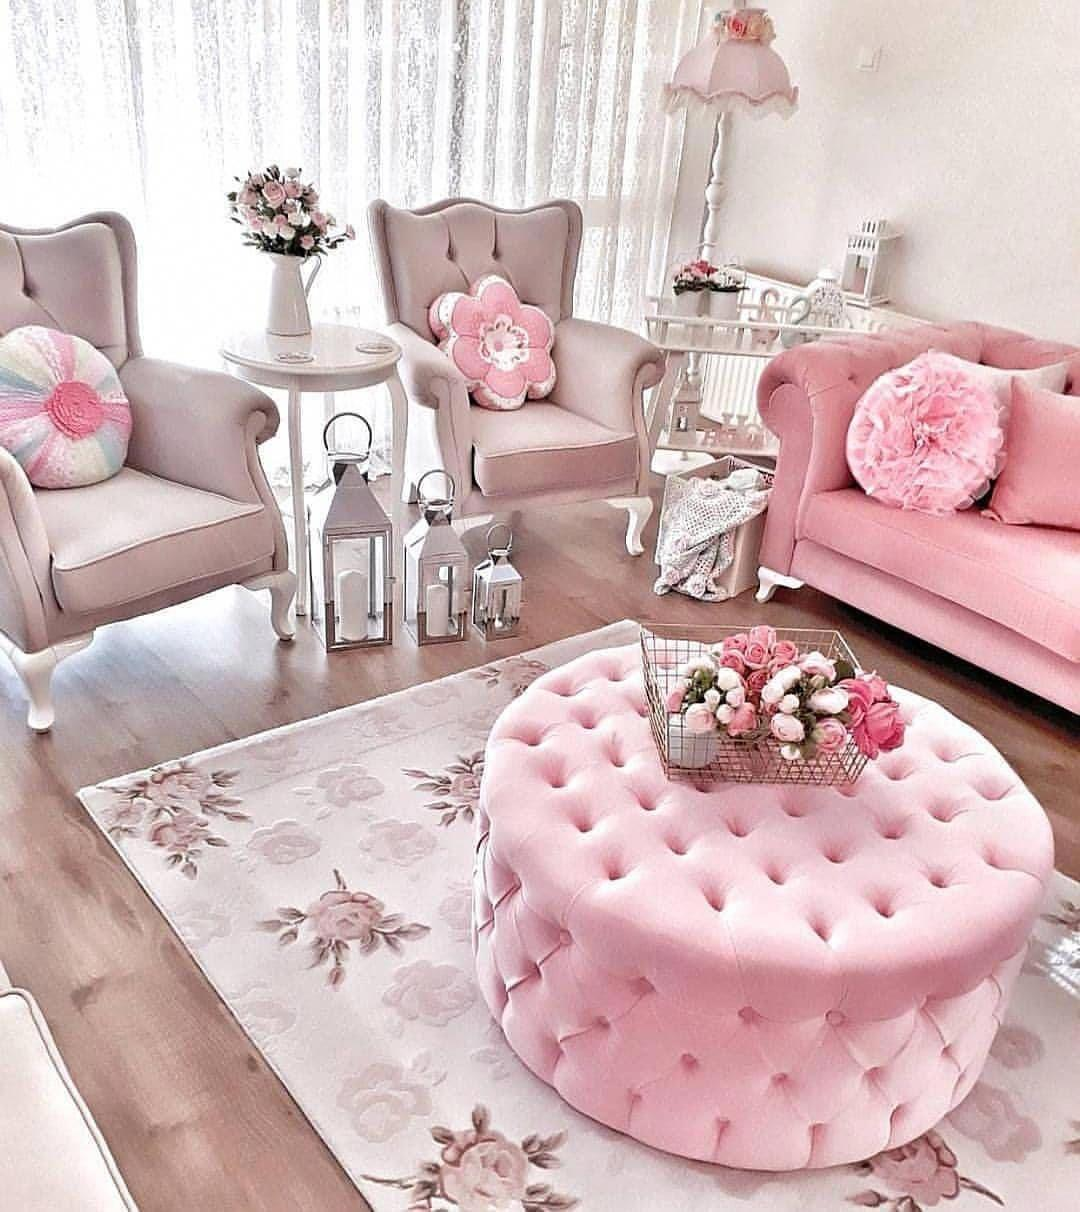 Pink is every woman's favorite color. And the pink room is our favorite room. Admire the lovely and cozy interiors together.